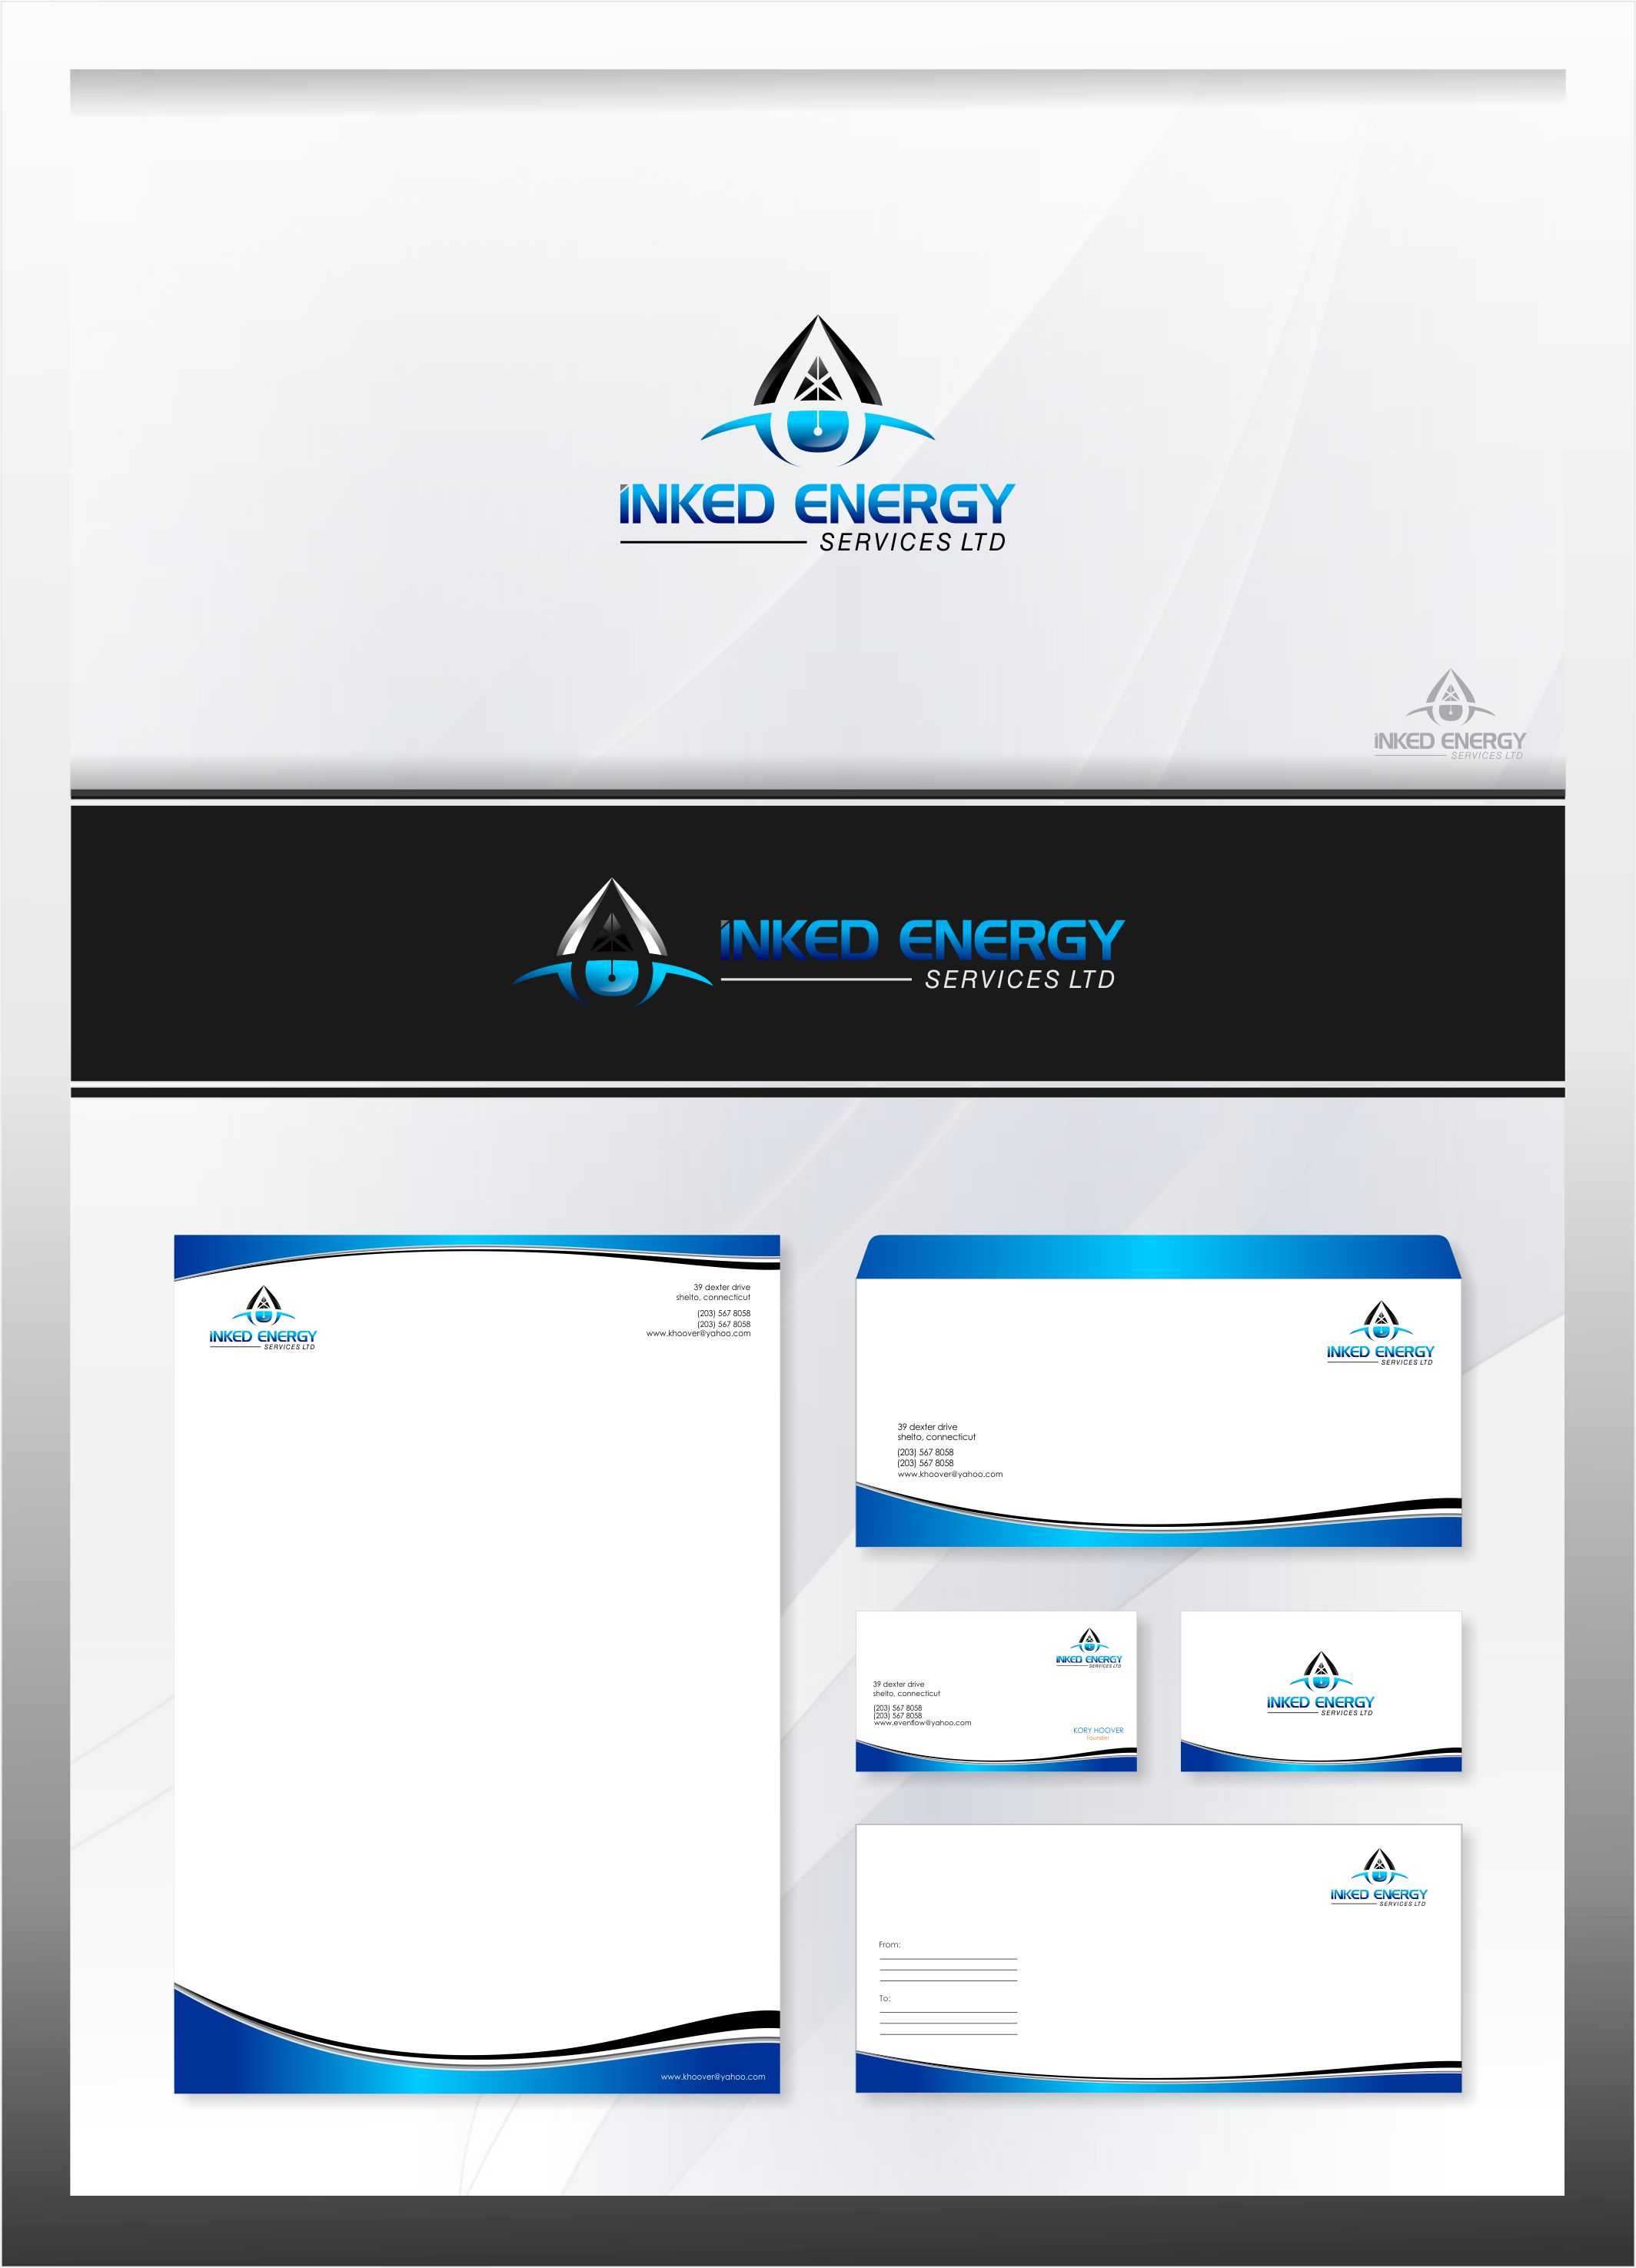 Logo Design by Raymond Garcia - Entry No. 169 in the Logo Design Contest Creative Logo Design for INKED ENERGY SERVICES LTD.